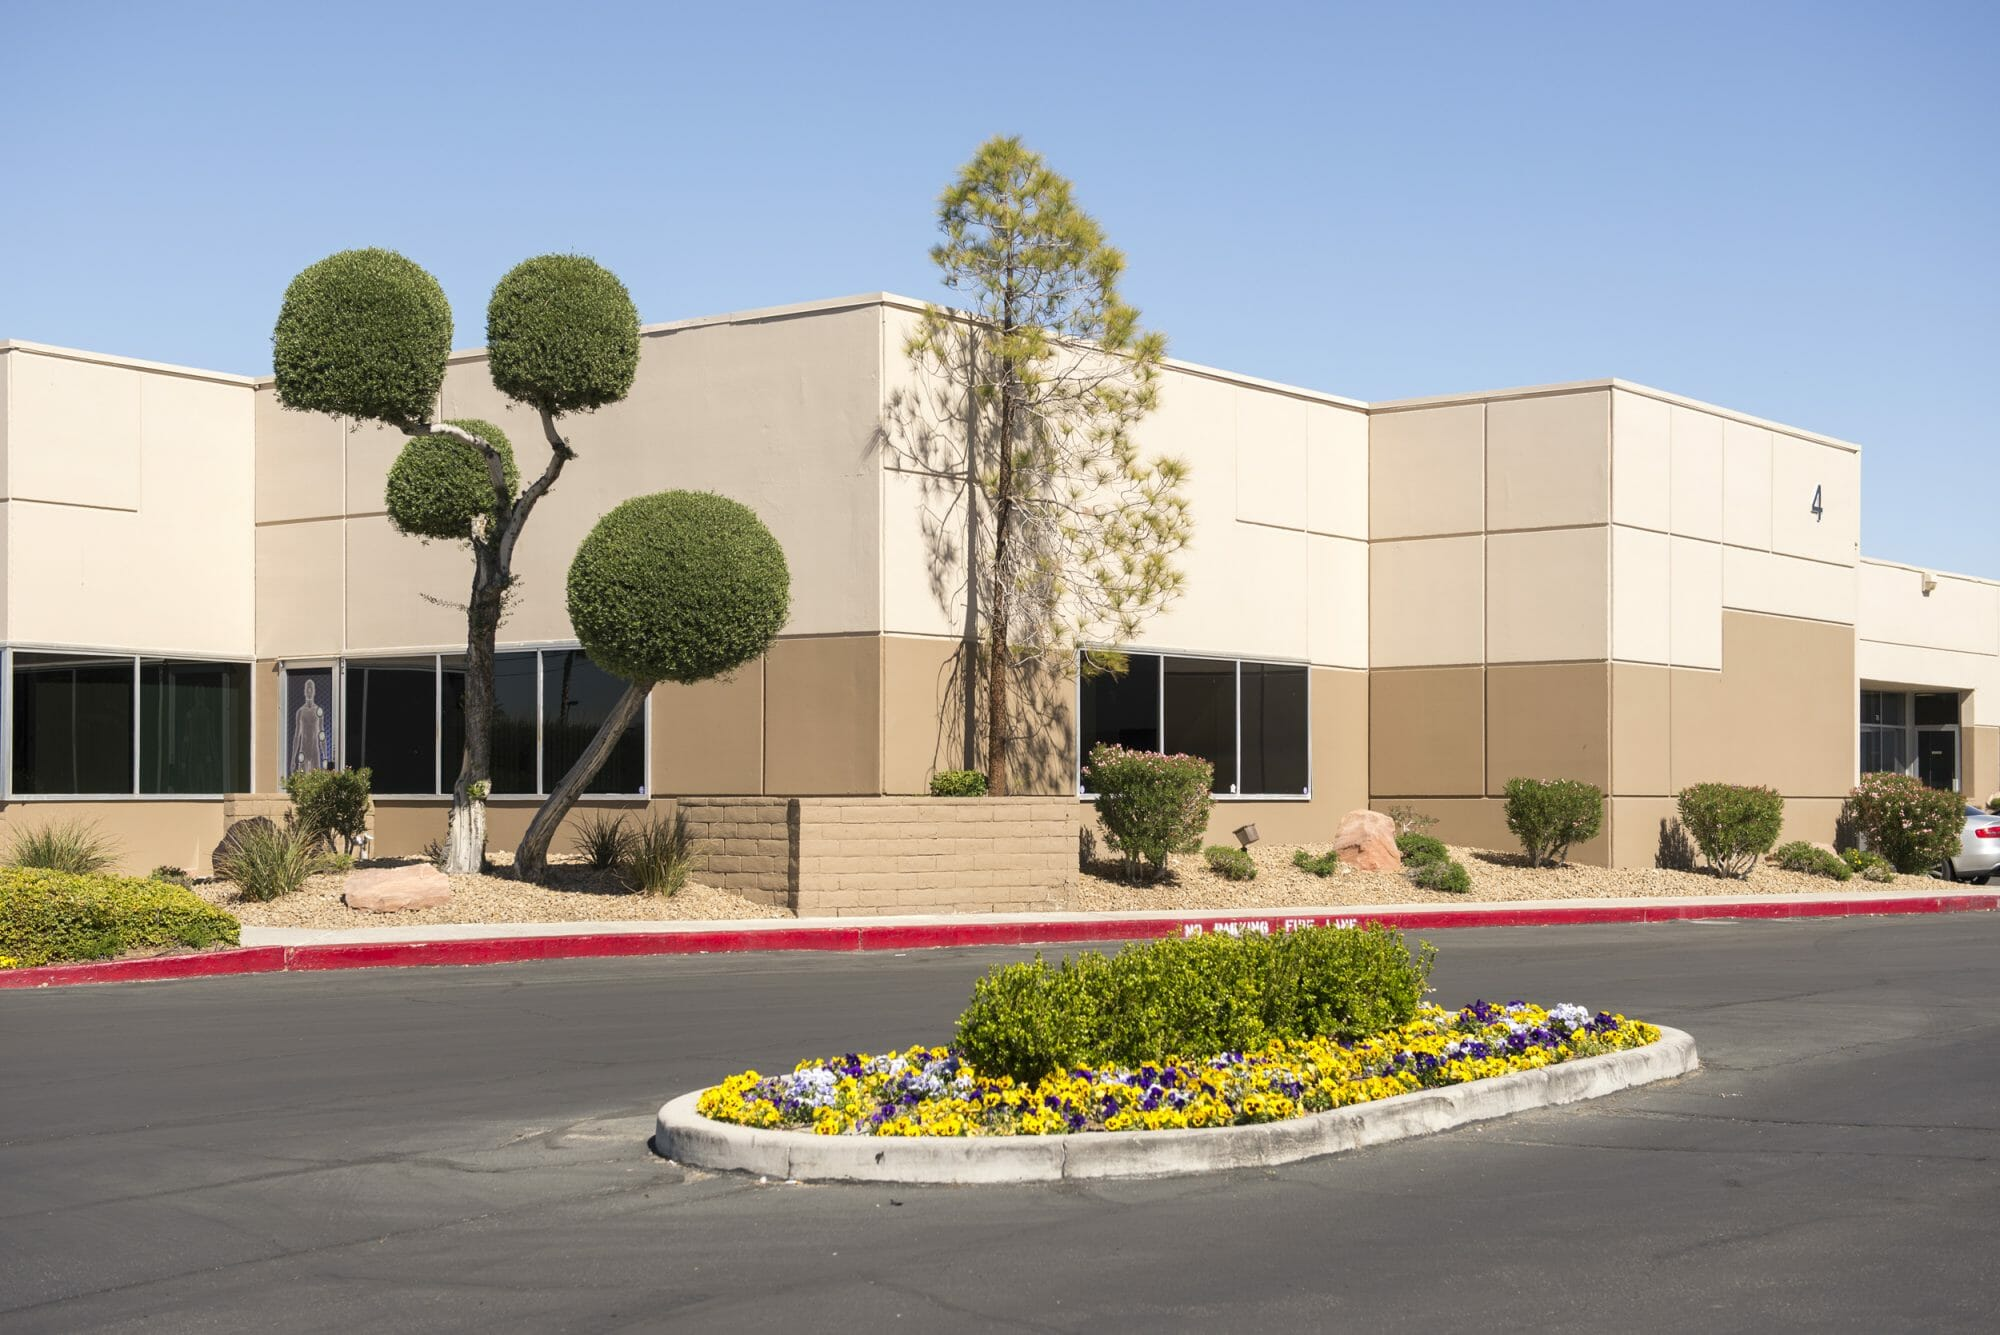 Exterior and landscaping at Eastern Commerce Center